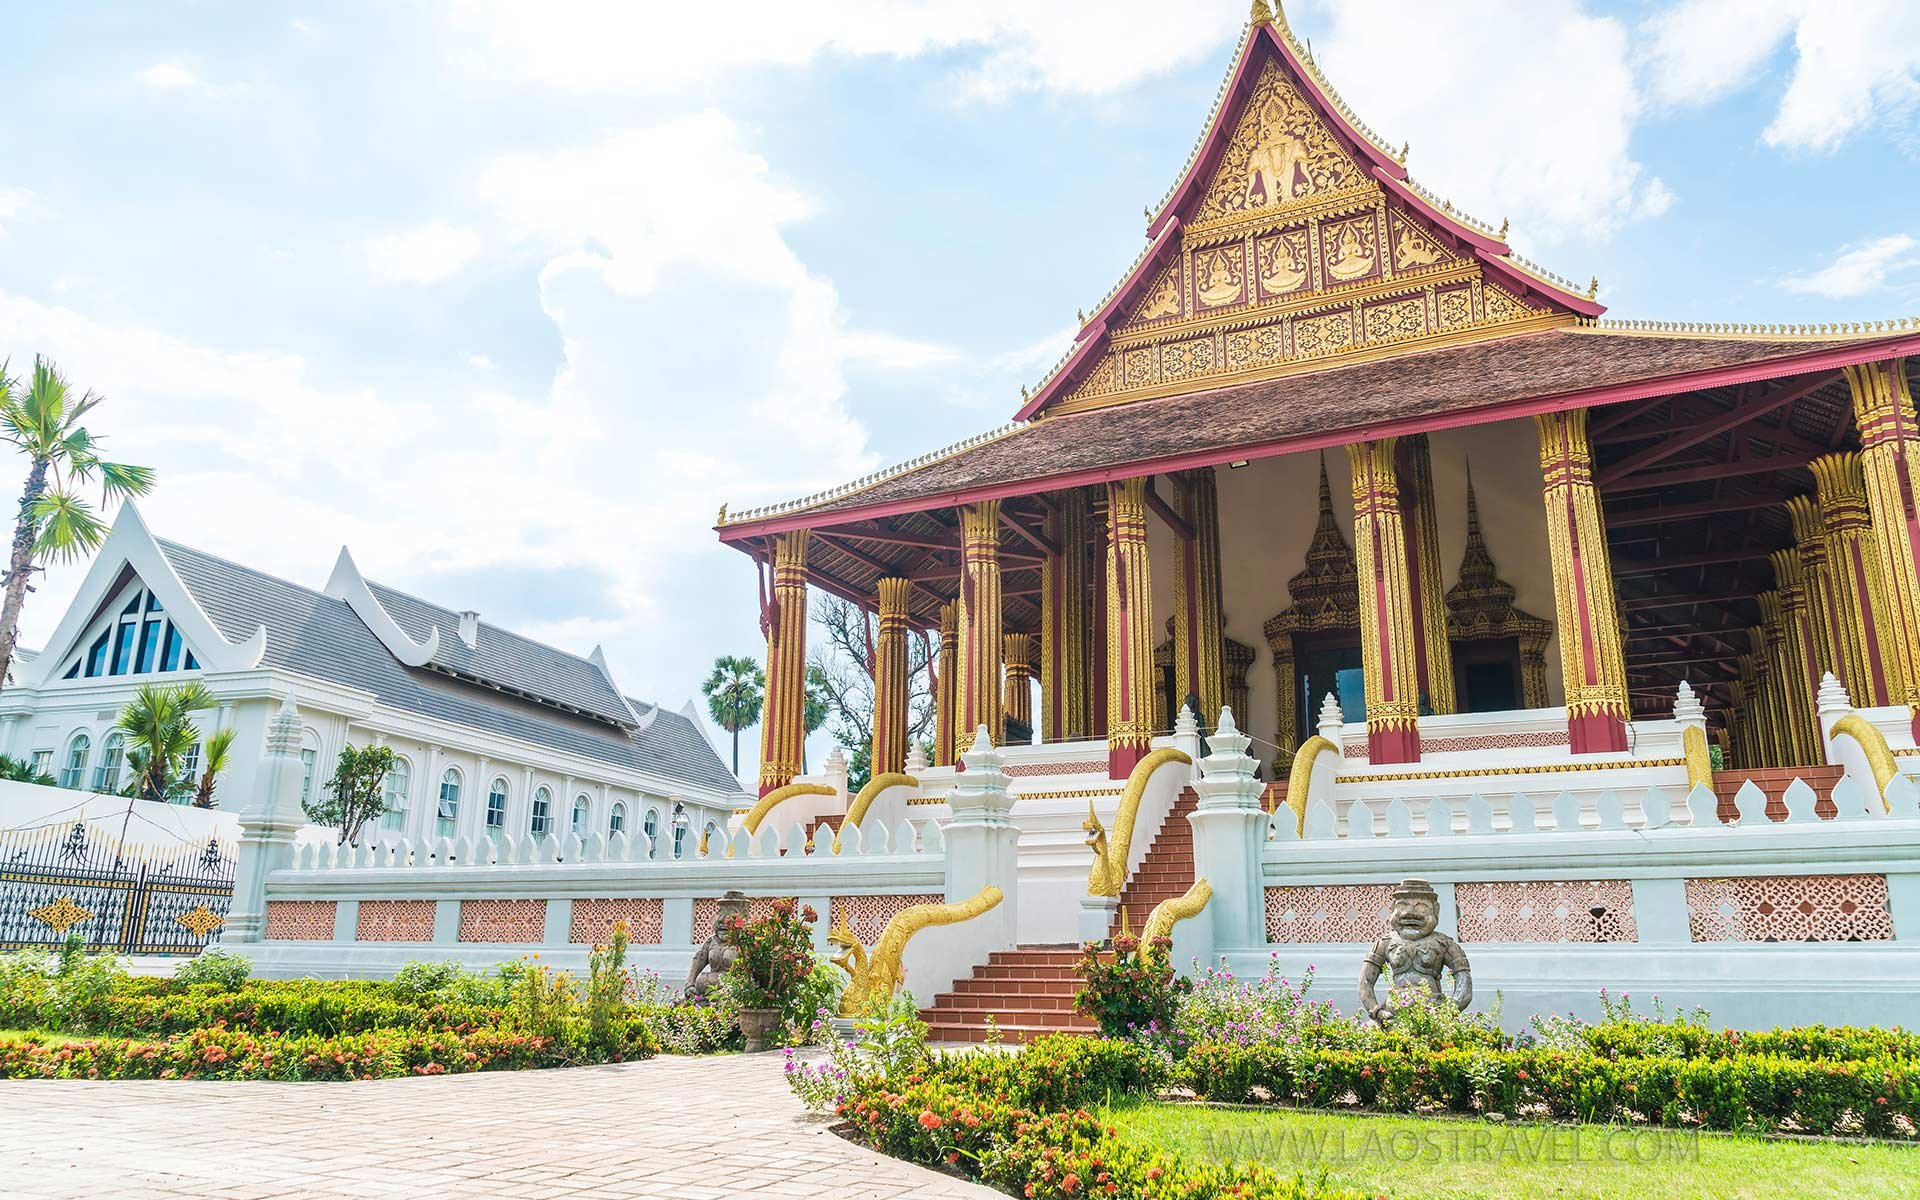 Laos Luxury Journey - 7 days